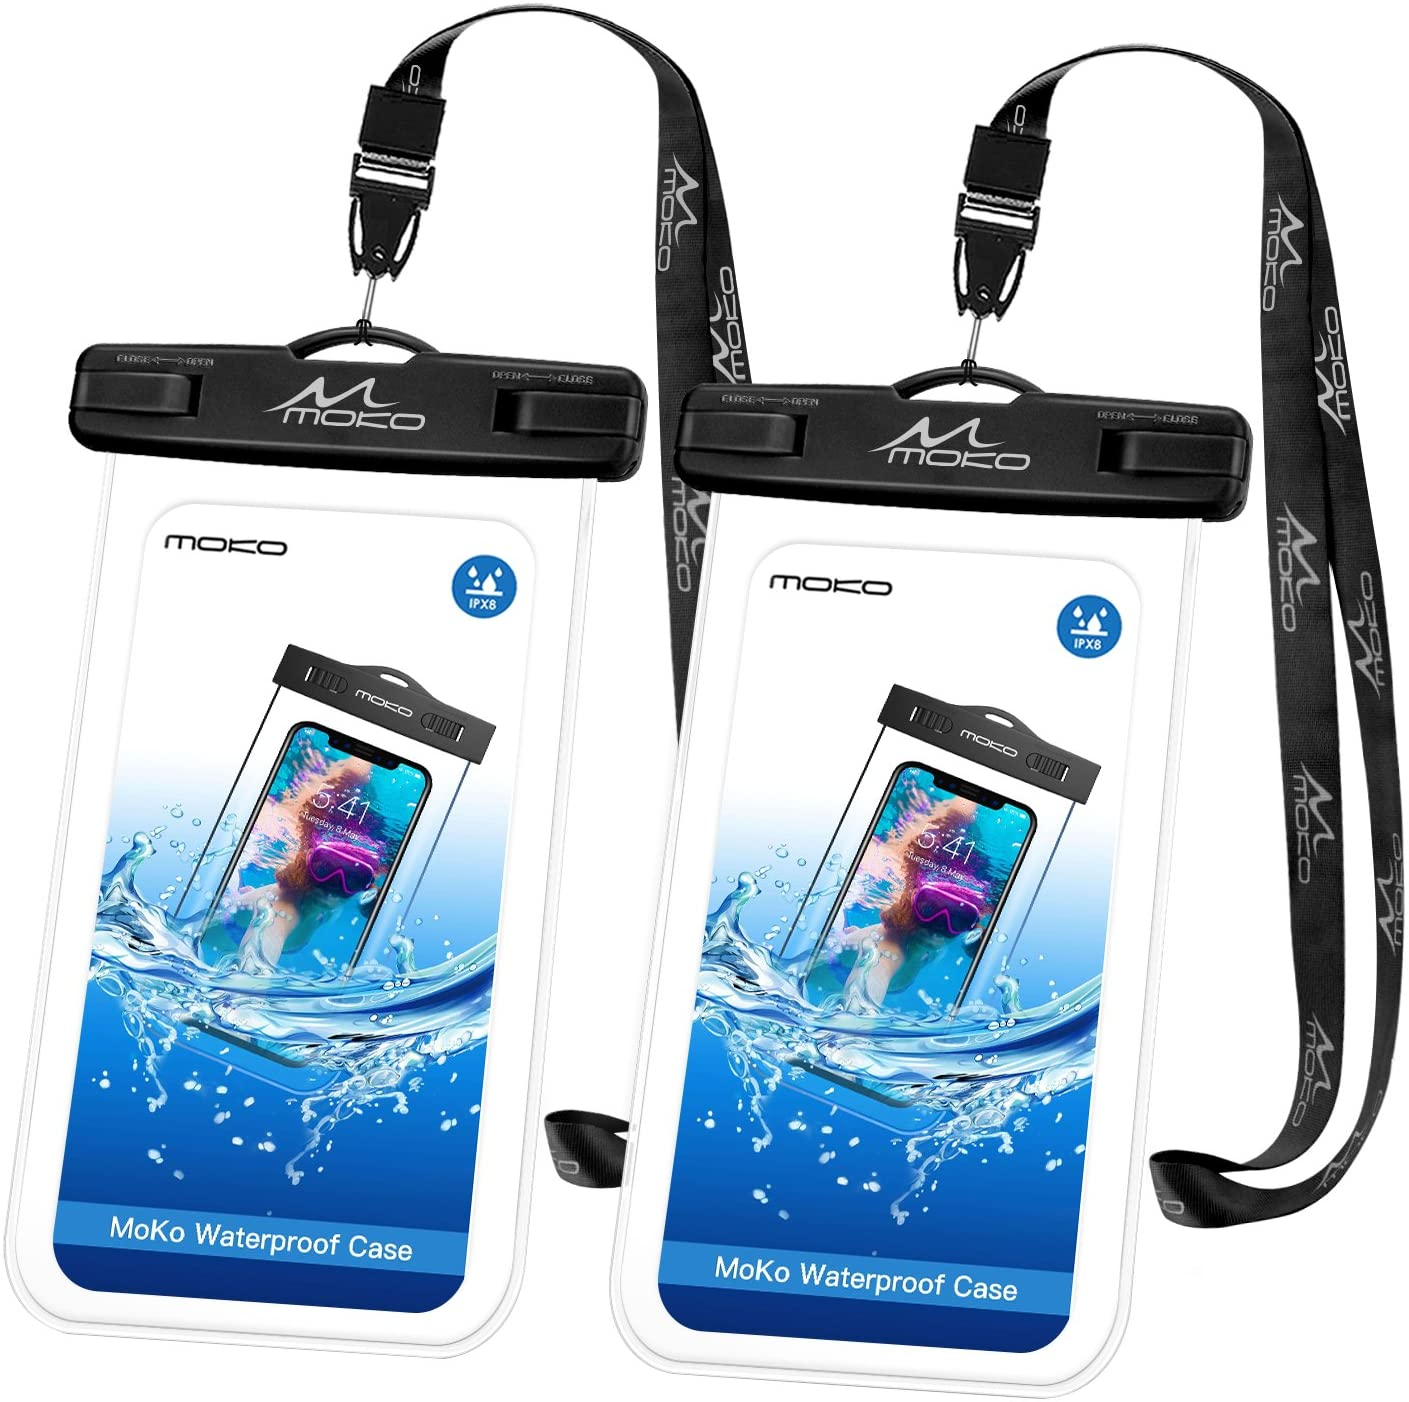 MoKo Waterproof Phone Pouch [2 Pack], Underwater Clear Phone Case Dry Bag with Lanyard Compatible with iPhone 11/11 Pro Max, X/Xs/Xr/Xs Max, 8/7/6 Plus, Samsung S10/S9/S8 Plus, S10e, S20, Note 10/9/8